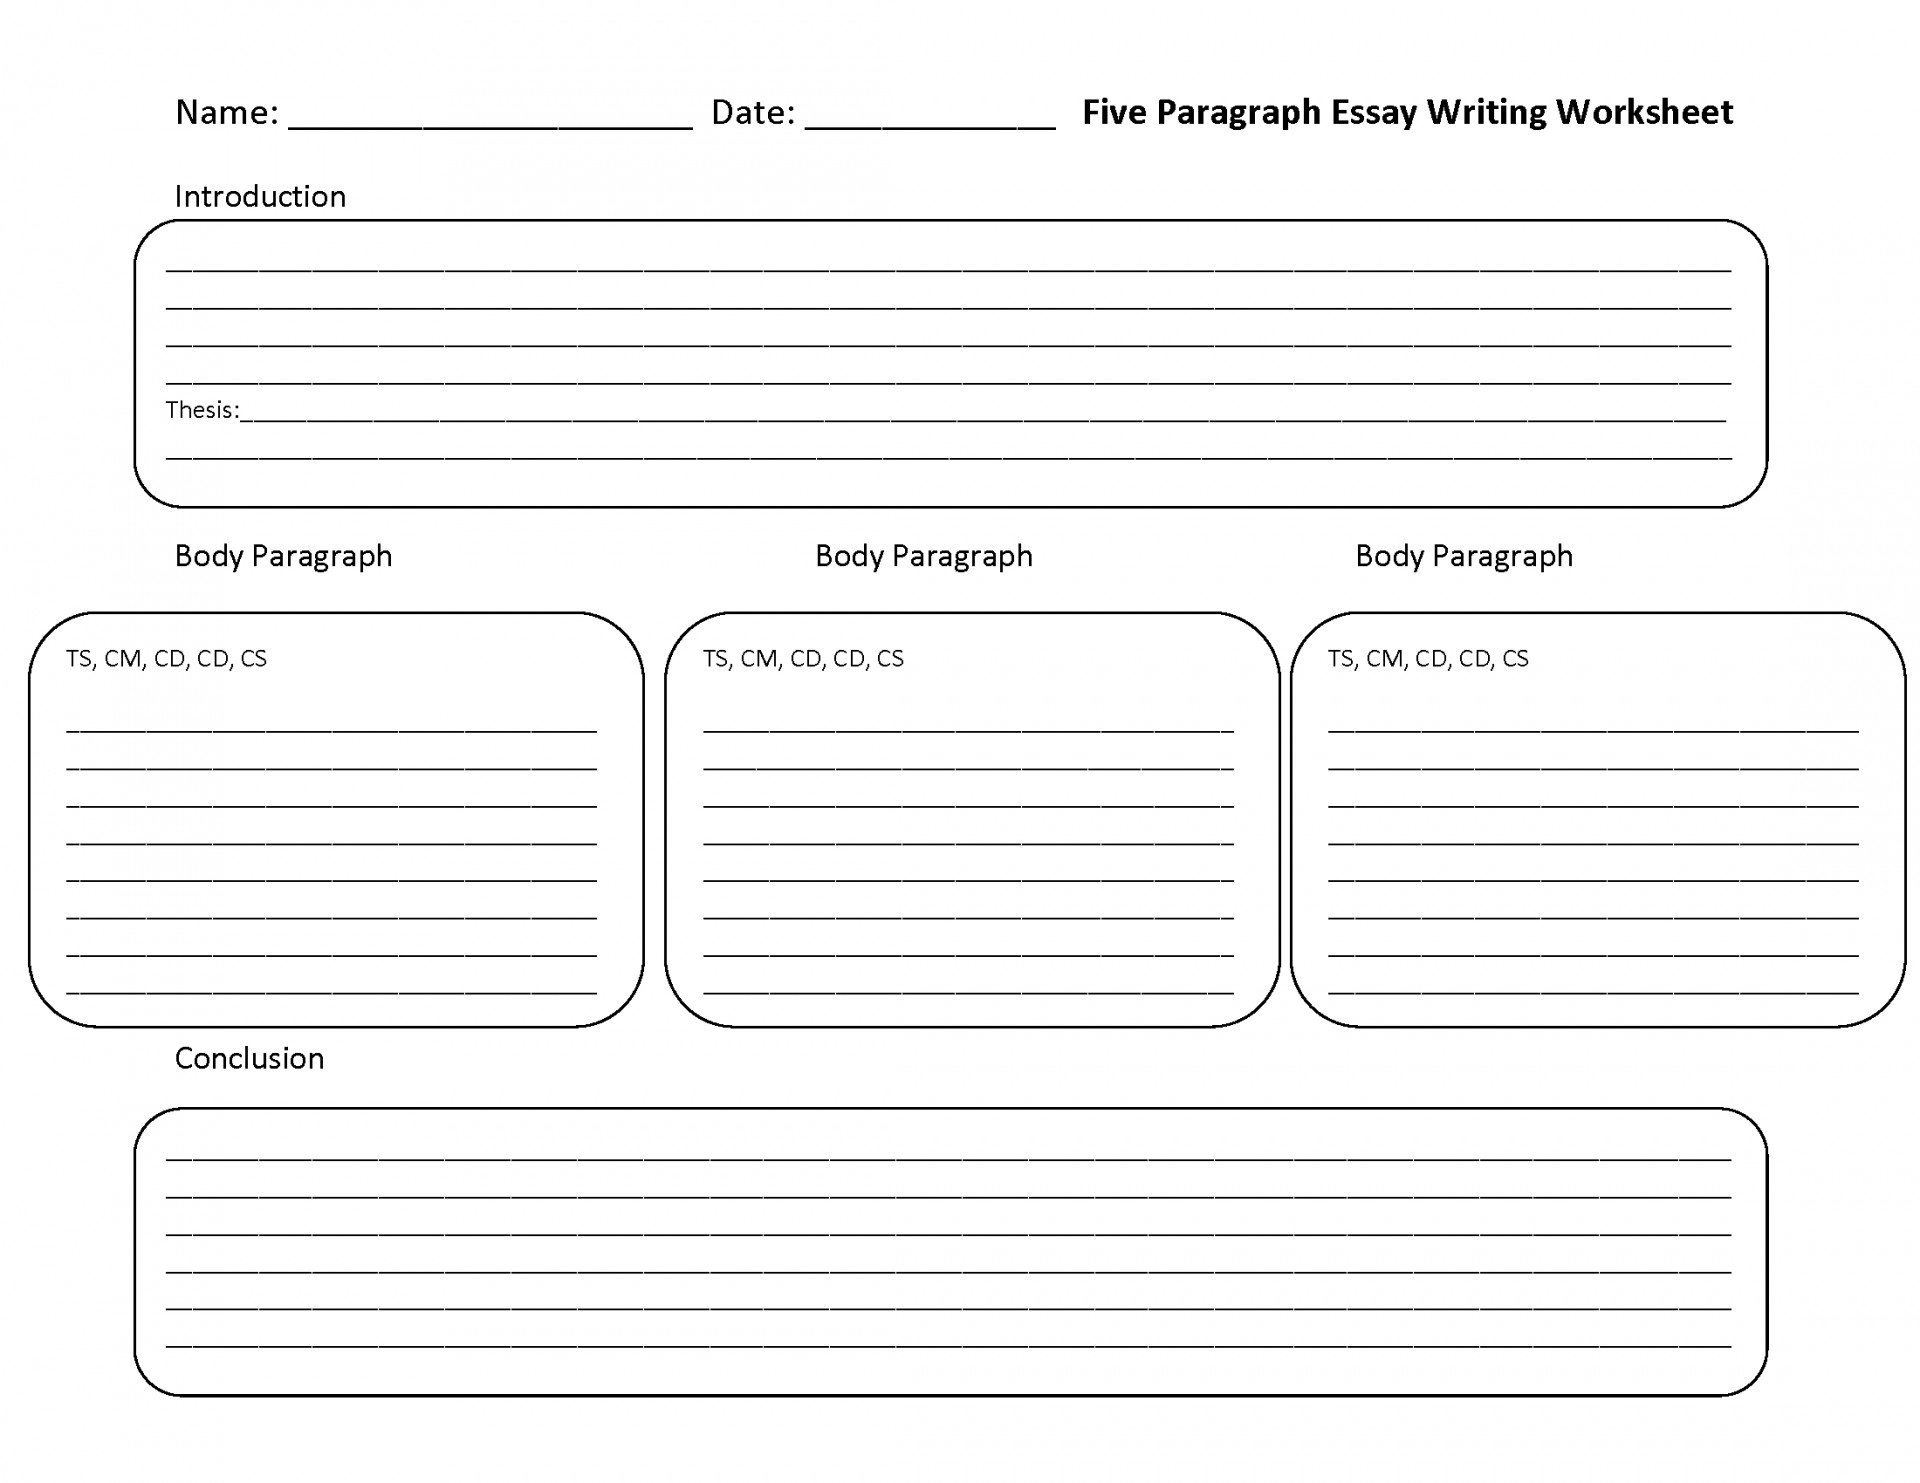 008 Essay Graphic Organizer Paragraph Poemsrom Co For Writing Literaryssays Worksheets Throughout Organizers College Informative Free Persuasive Best Descriptive Argumentative Unforgettable Middle School Pdf Template Generator 1920